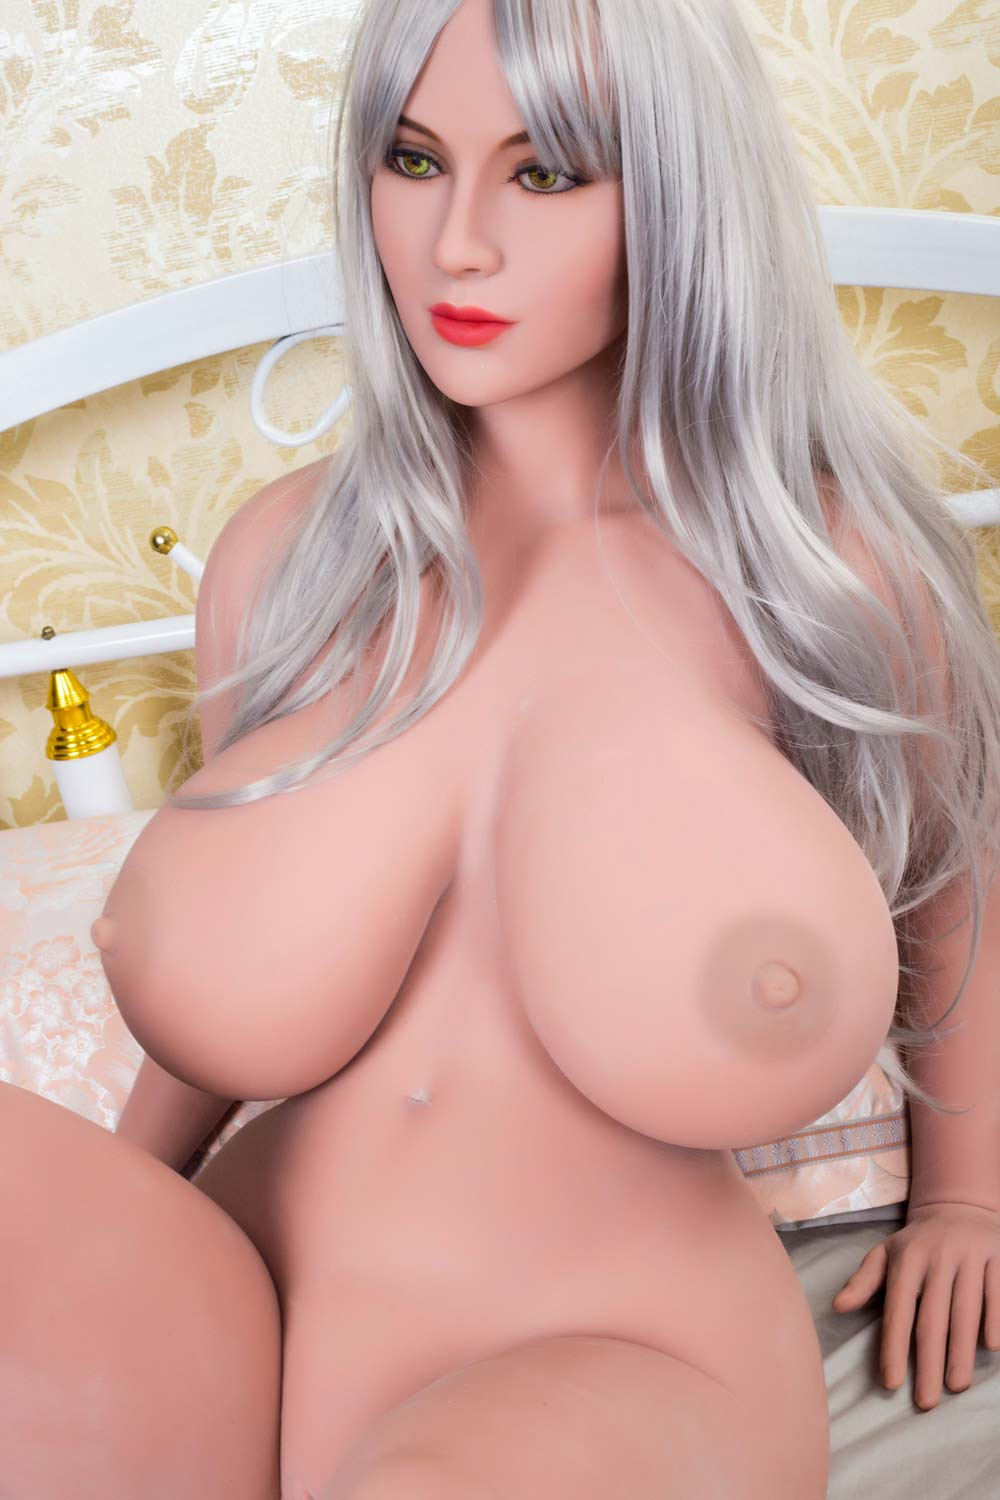 Big breasted sex doll sitting naked on the bed